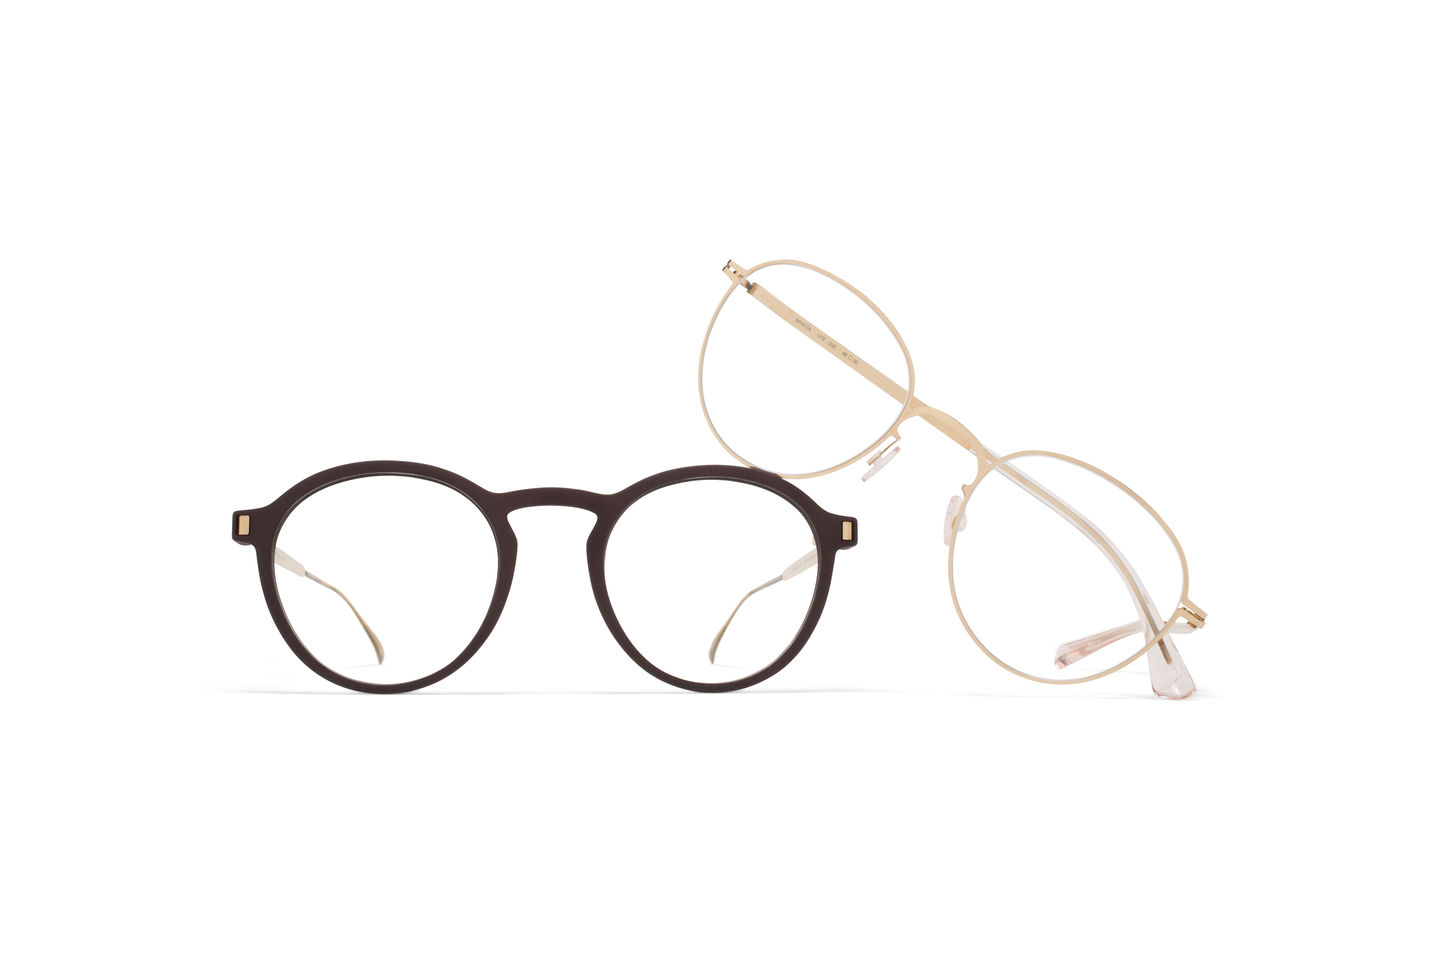 mykita-mylon-hybrid-rx-acai-mh8-ebony-brown-champagne-gold-clear-3502510_mykita-lite-acetate-rx-ove-champagne-gold-clear-1507917-ch-a-300.jpg